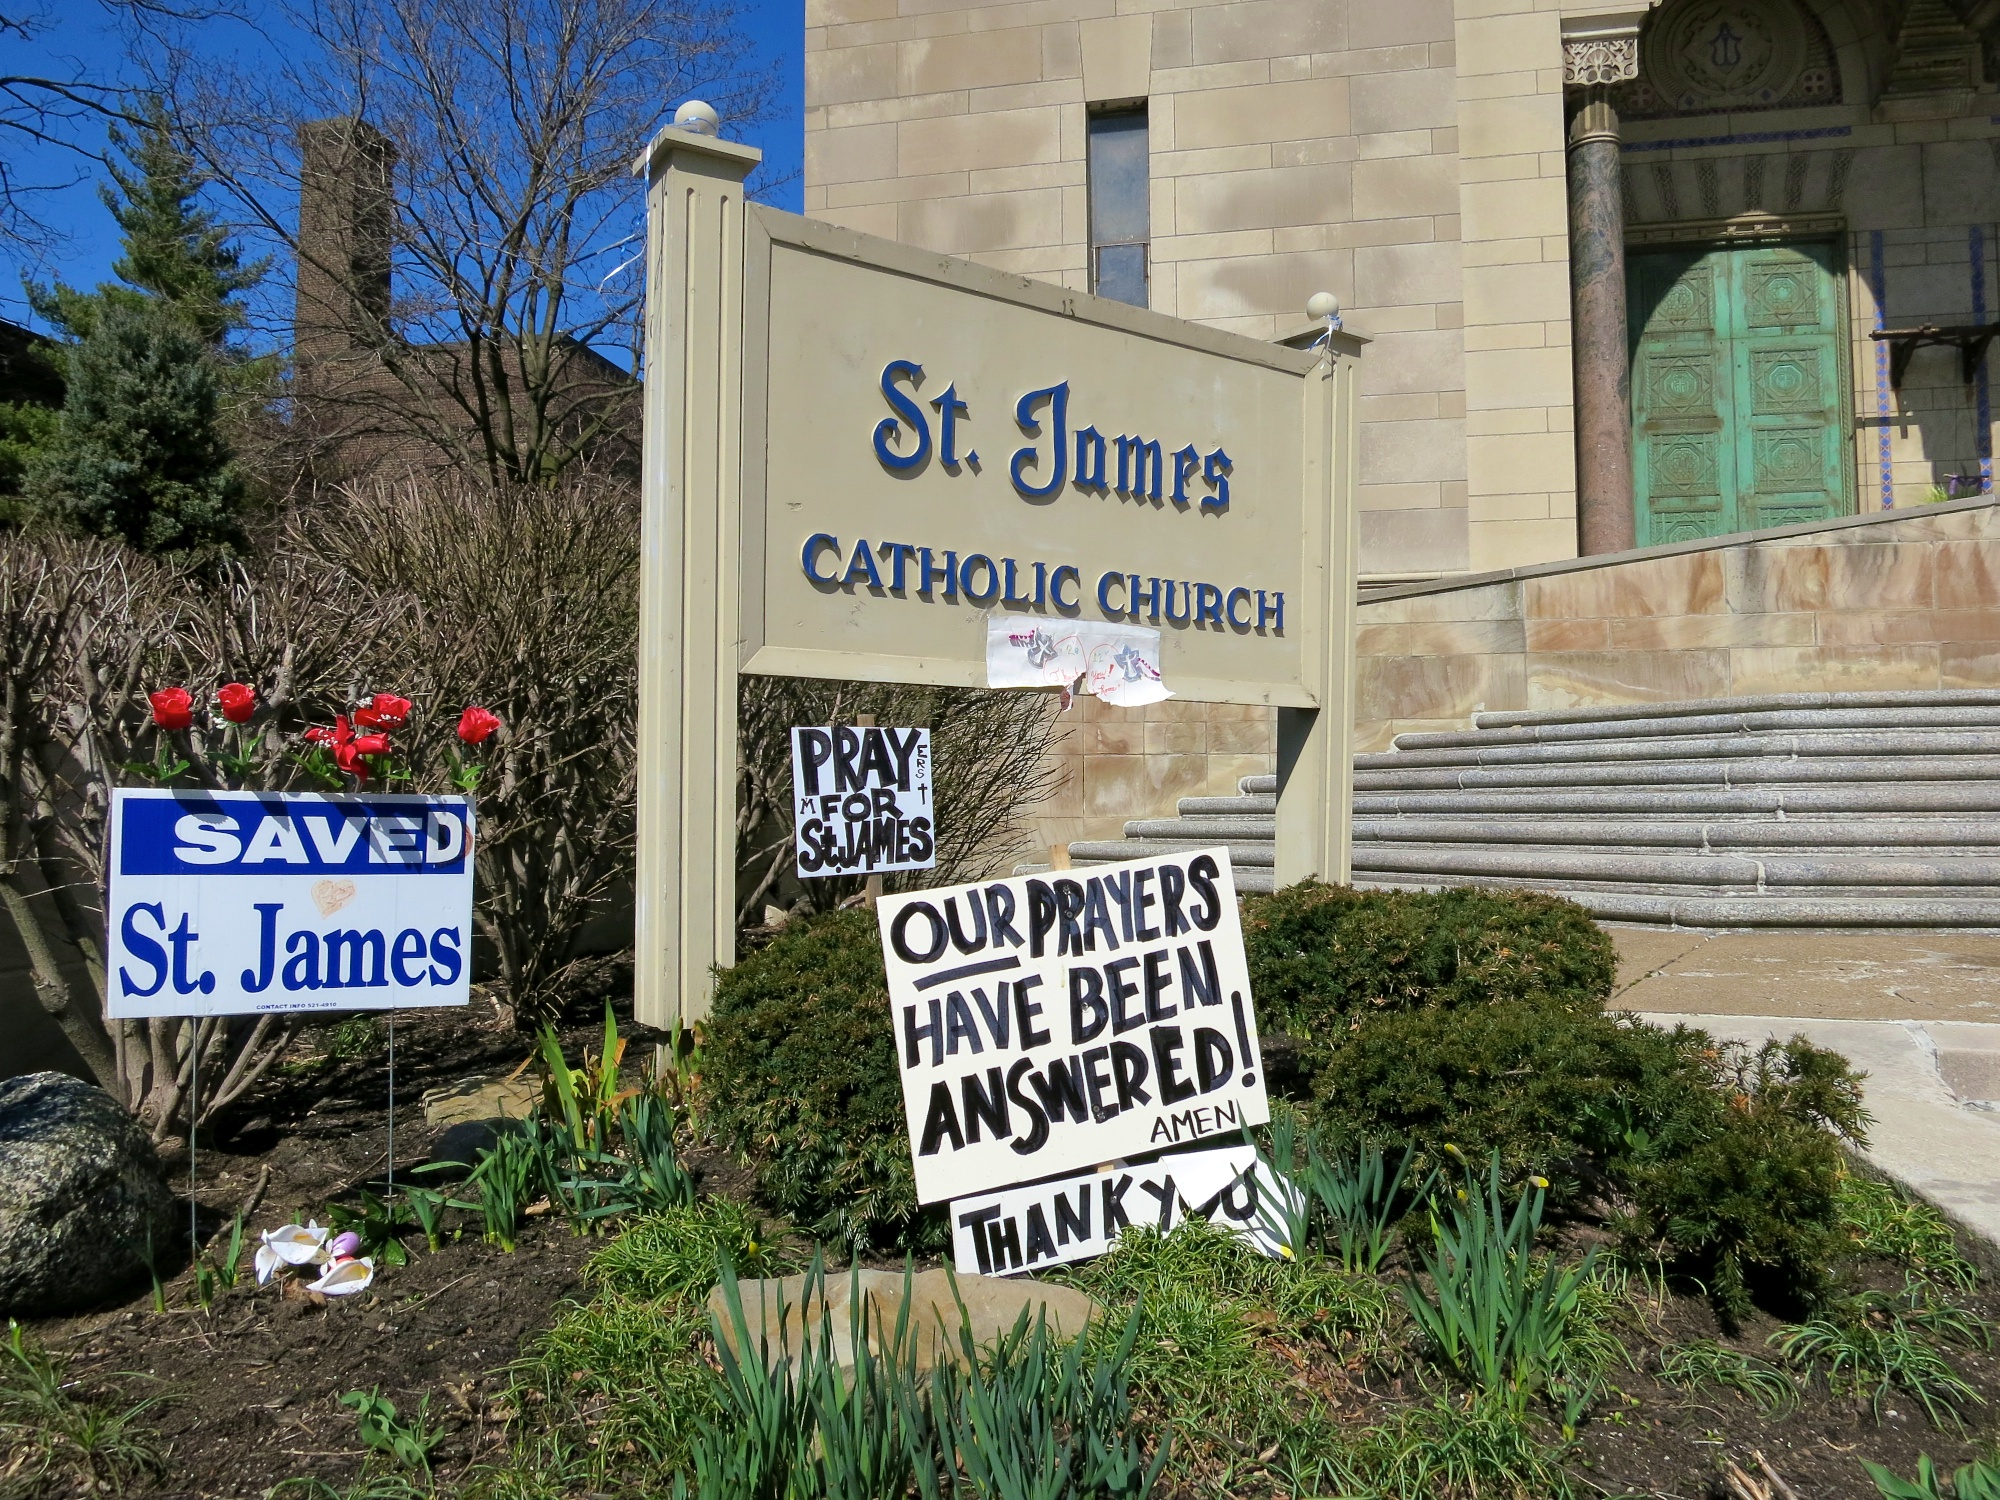 St. James Catholic Church - Lakewood, Ohio